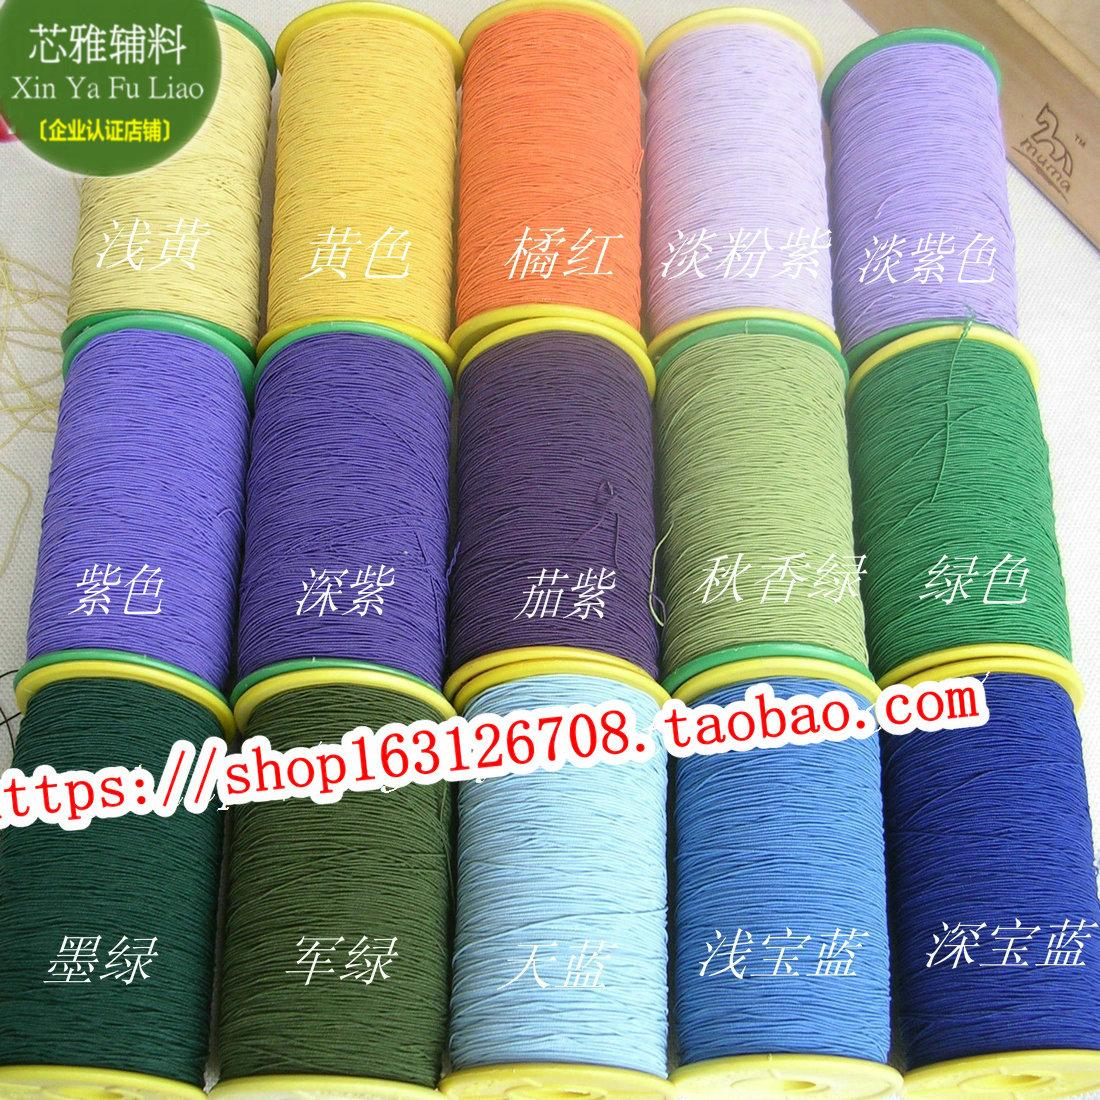 The Entire Volume song jin xian Ultra-Fine Springs Color Fine song jin  sheng round Elastic Band Sewing Thread Beaded Wire